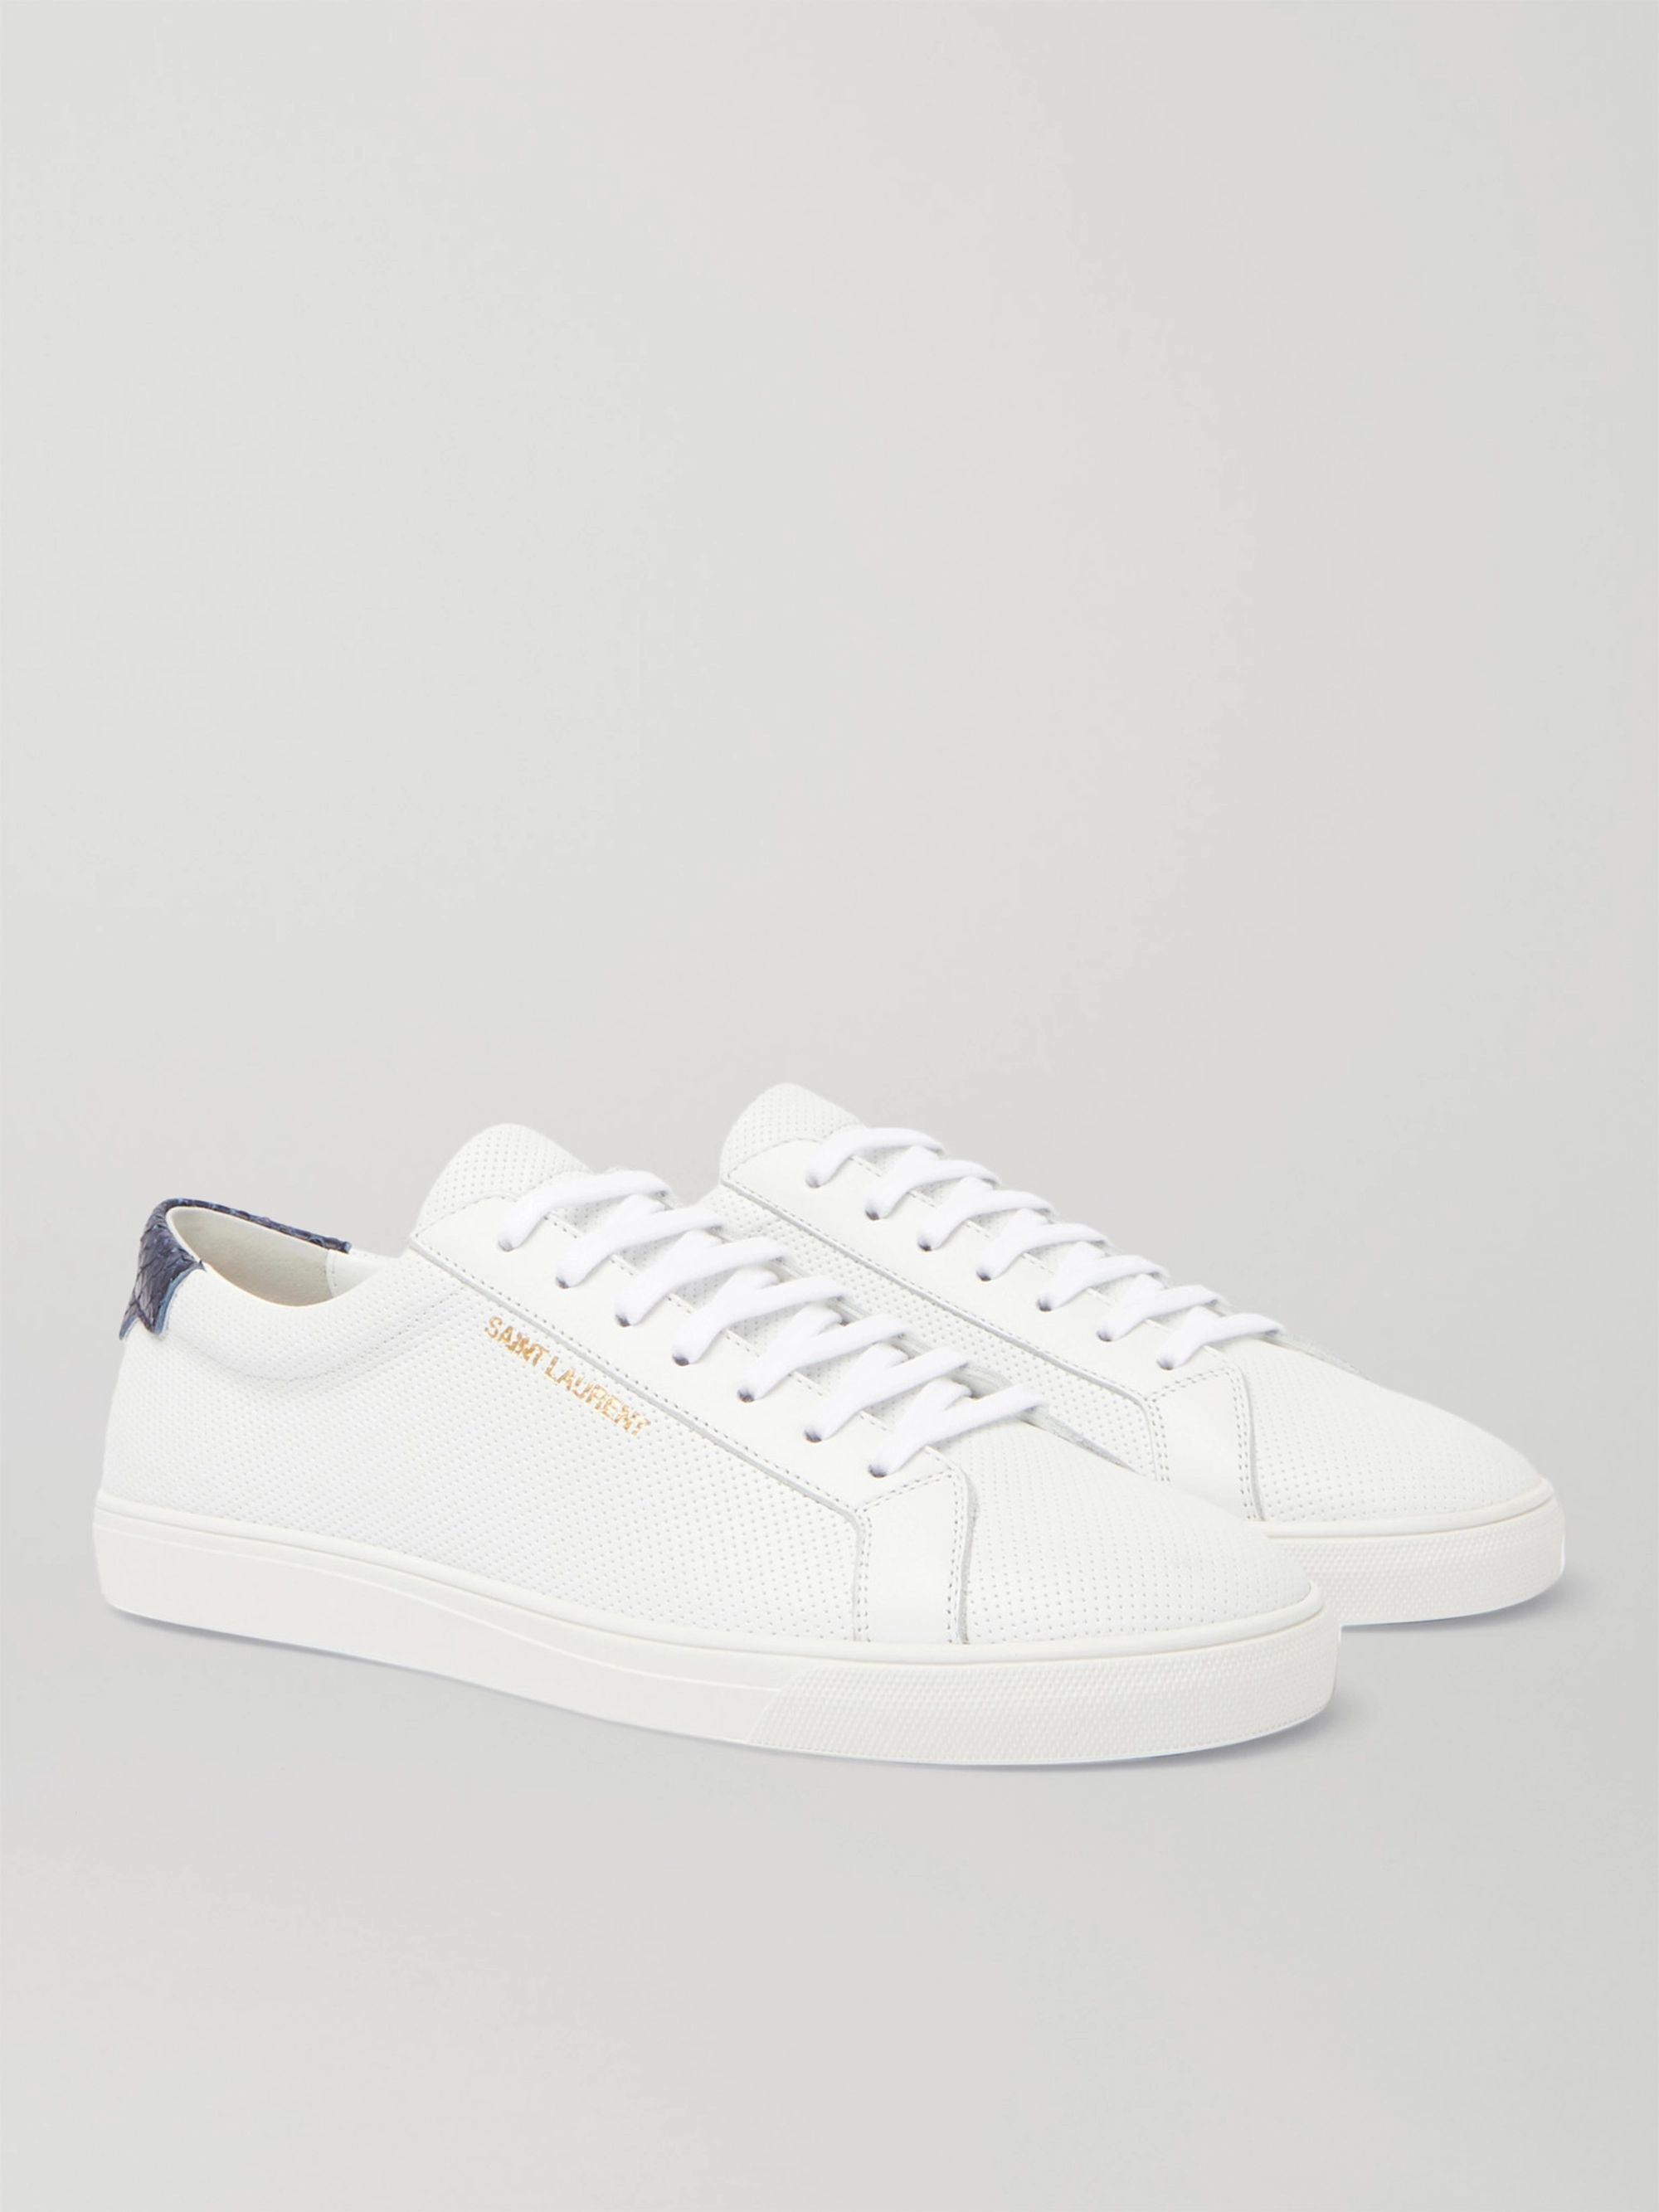 SAINT LAURENT Andy Snake Effect-Trimmed Perforated Leather Sneakers